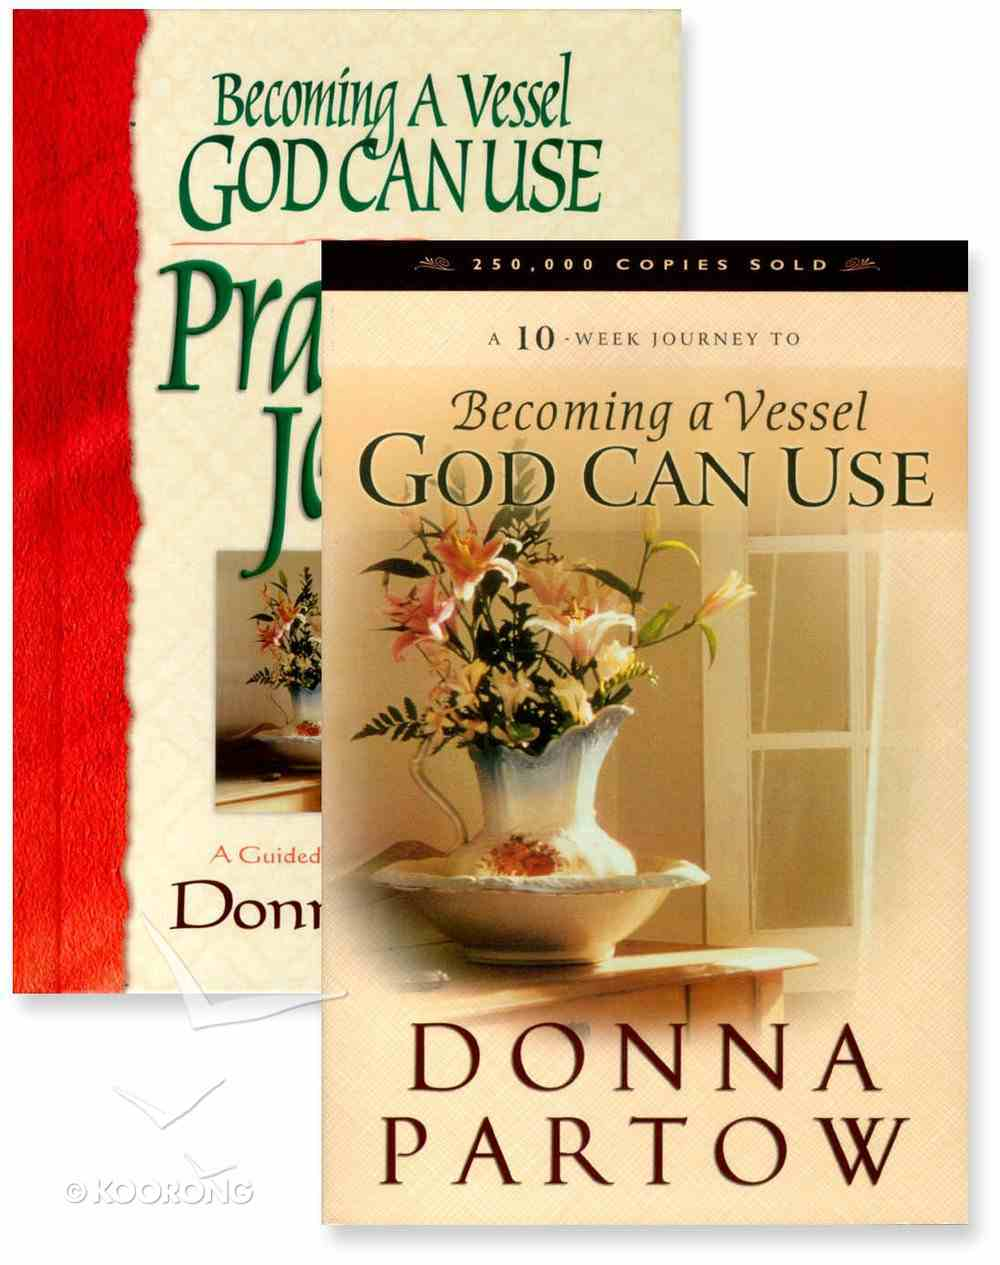 Becoming a Vessel God Can Use/Becoming a Vessel God Can Use Prayer Journal Pack